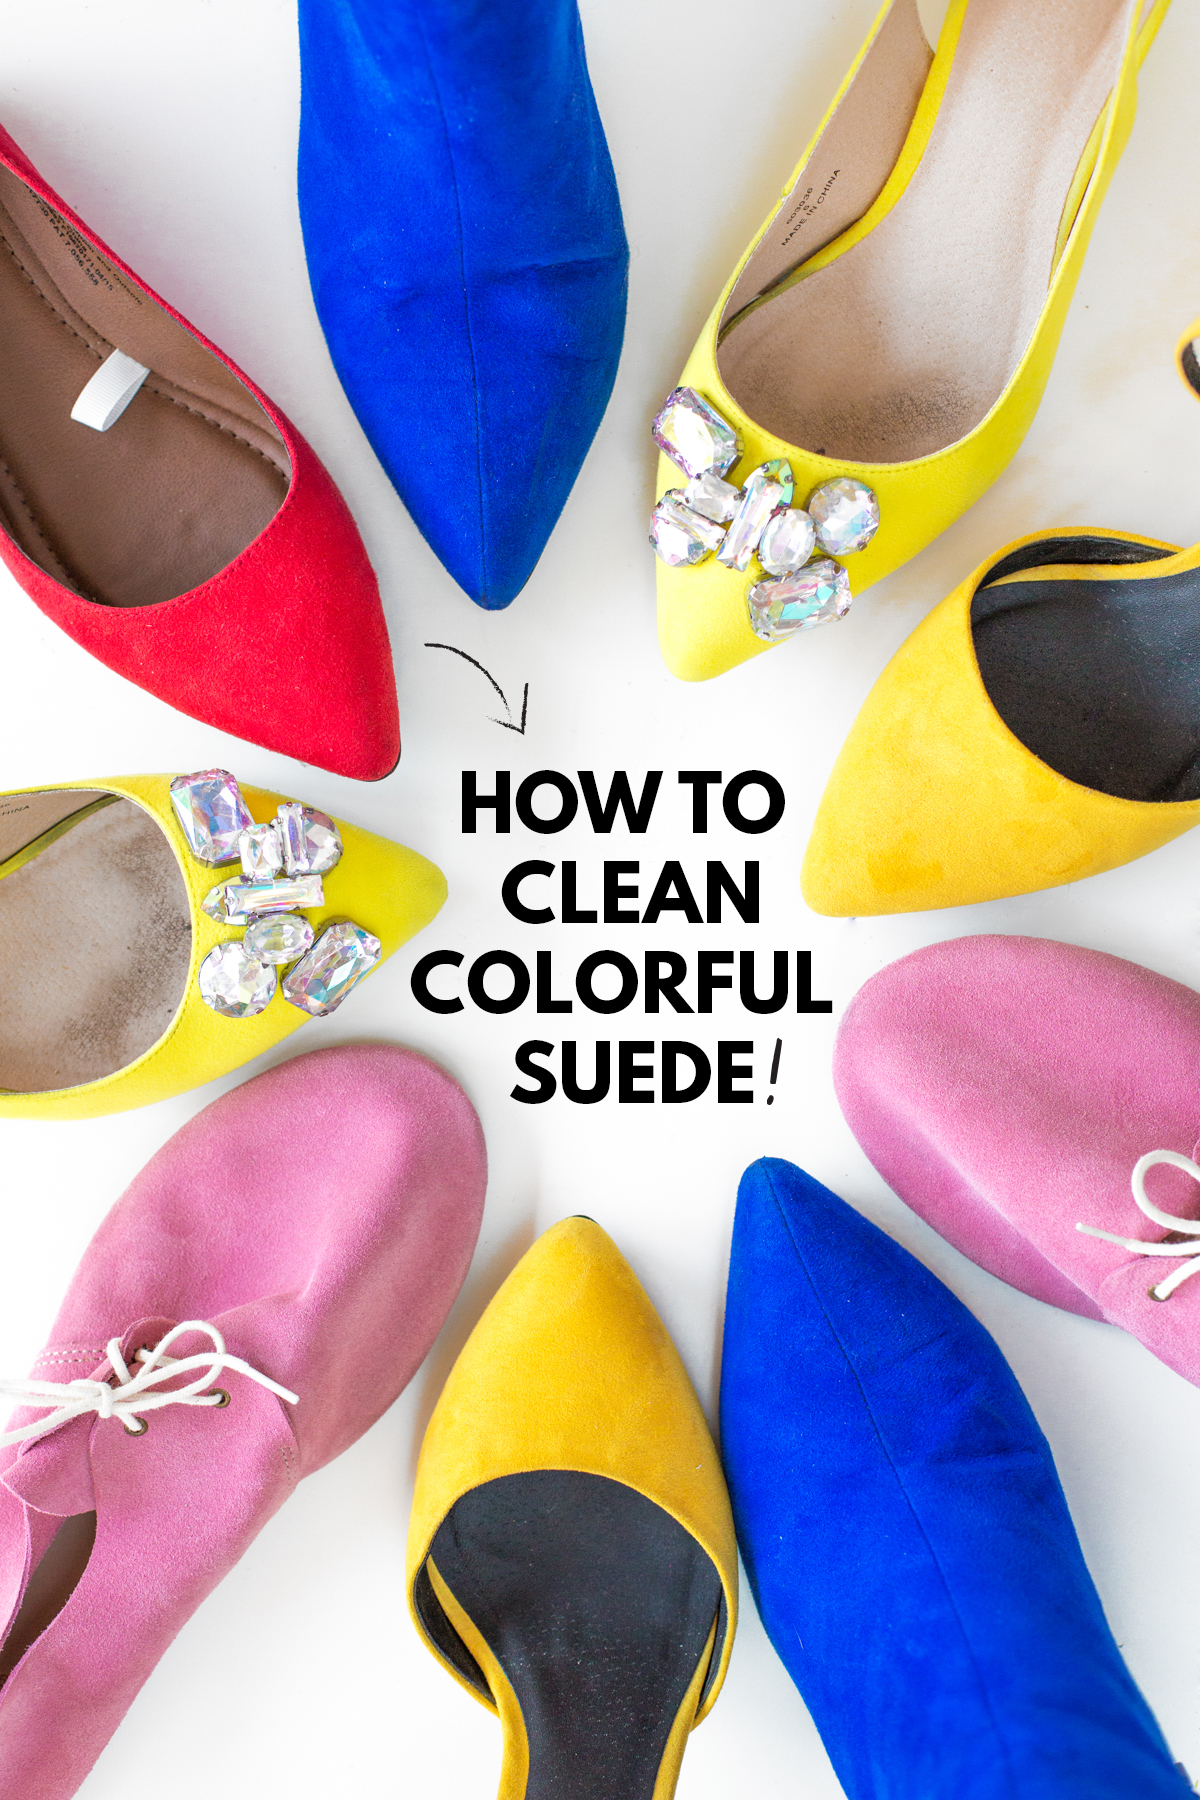 Suede Cleaning Kit | How Do You Clean Suede | How to Get Sweat Stains Out of Hats